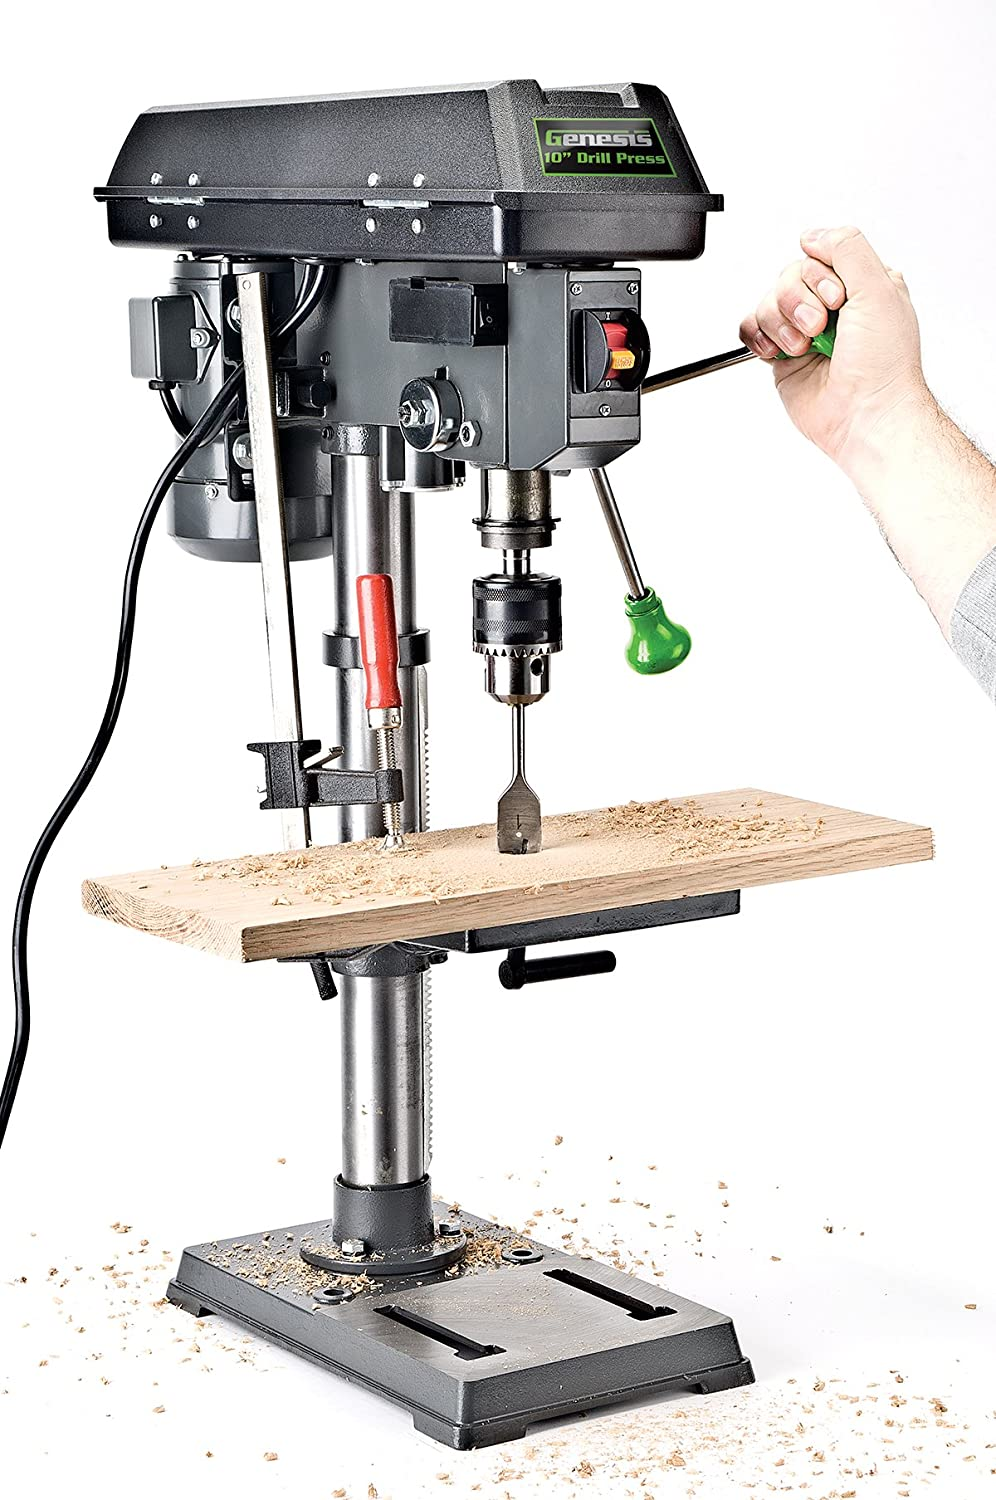 """Genesis GDP1005A 10"""" 5-Speed 4.1 Amp Drill Press with 5/8"""" Chuck"""